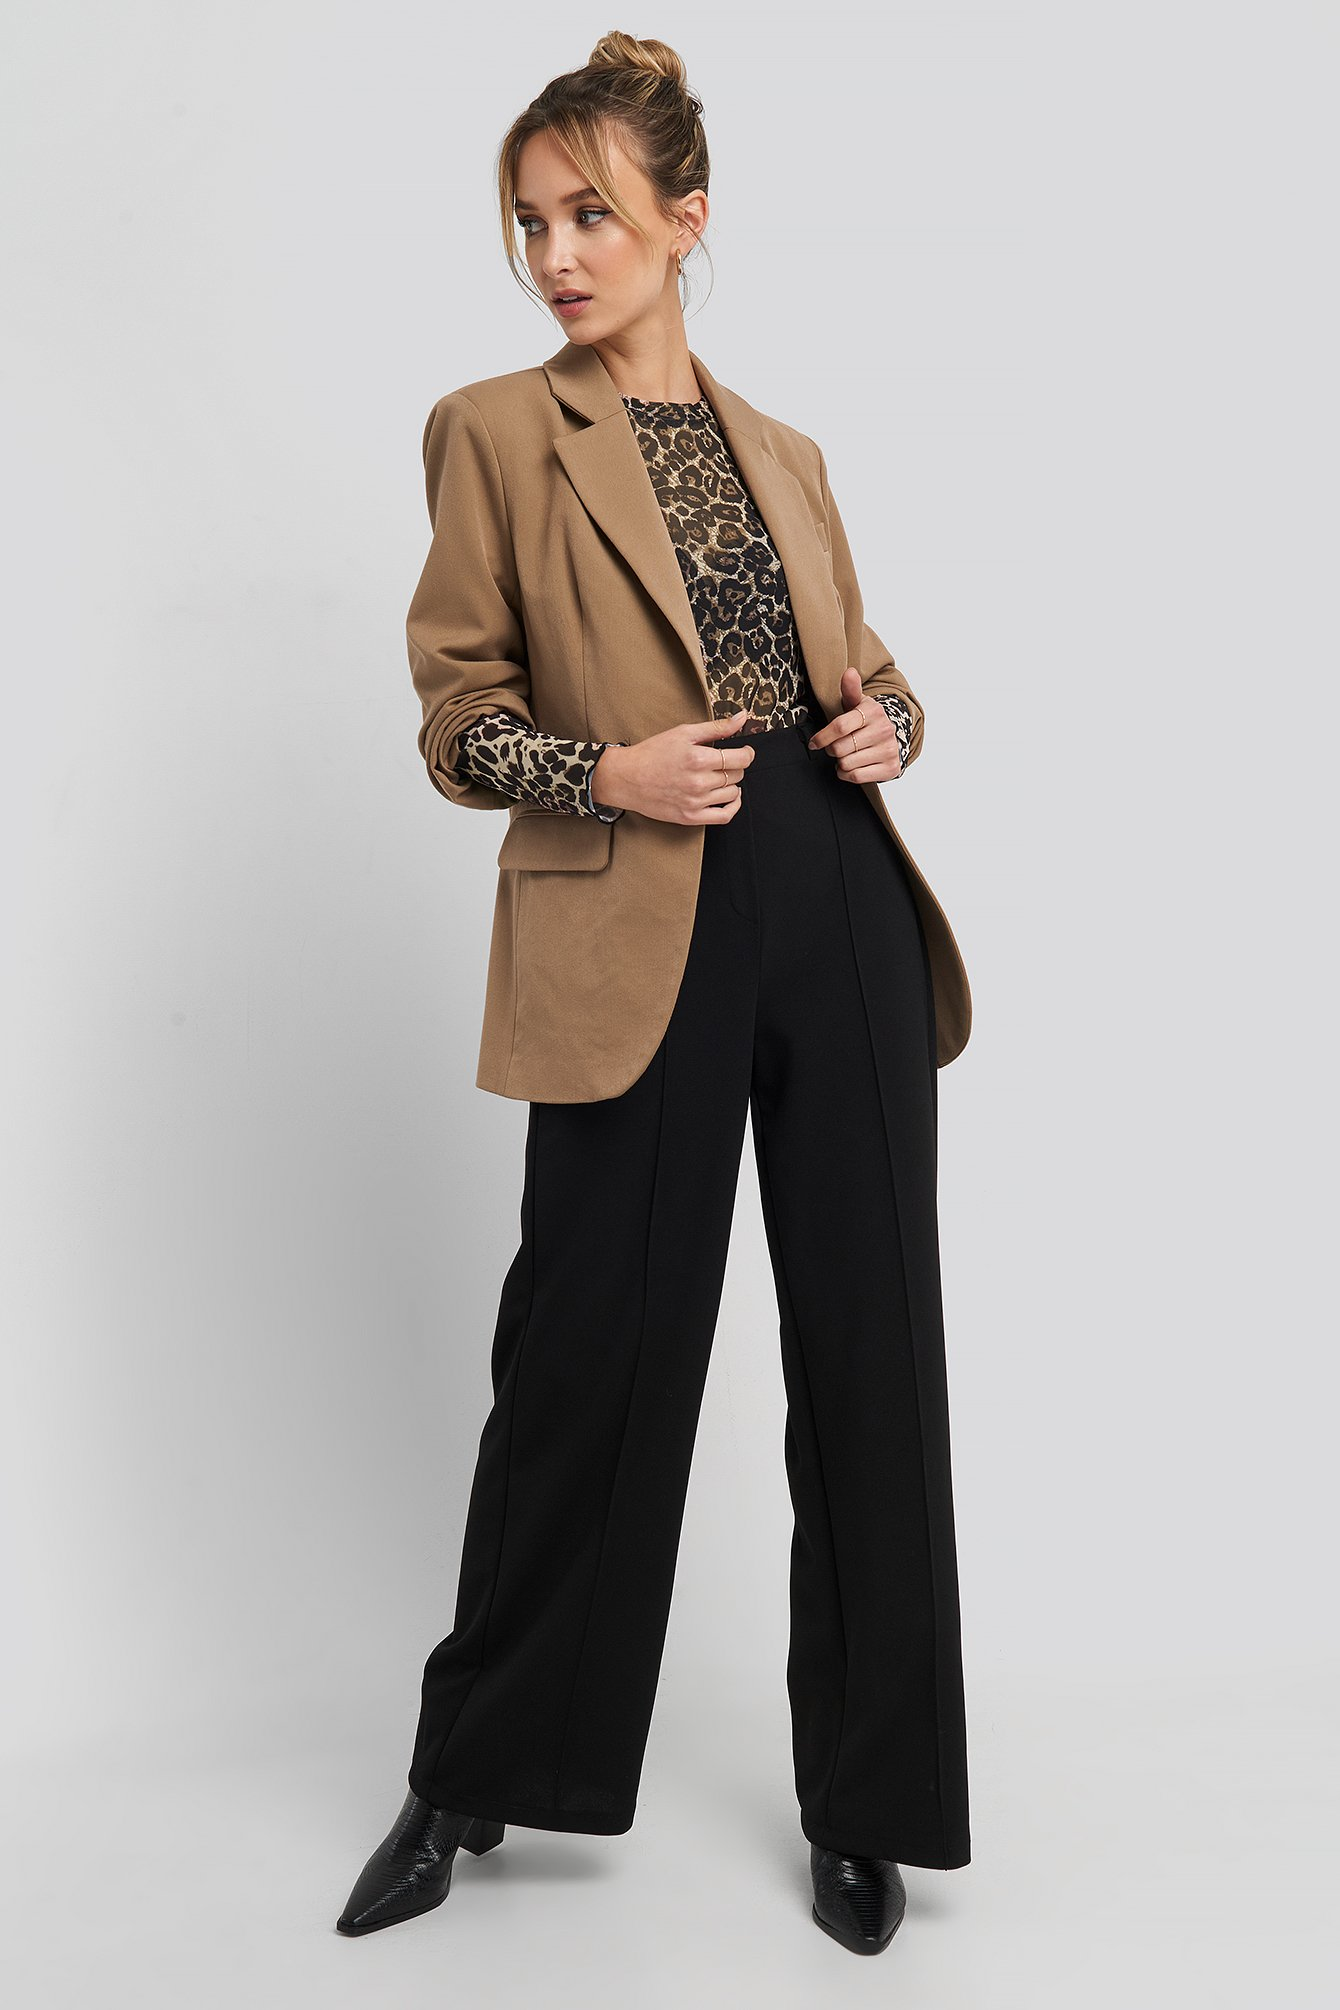 Stitch Detailed Wide Leg Pants Sort by Trendyol